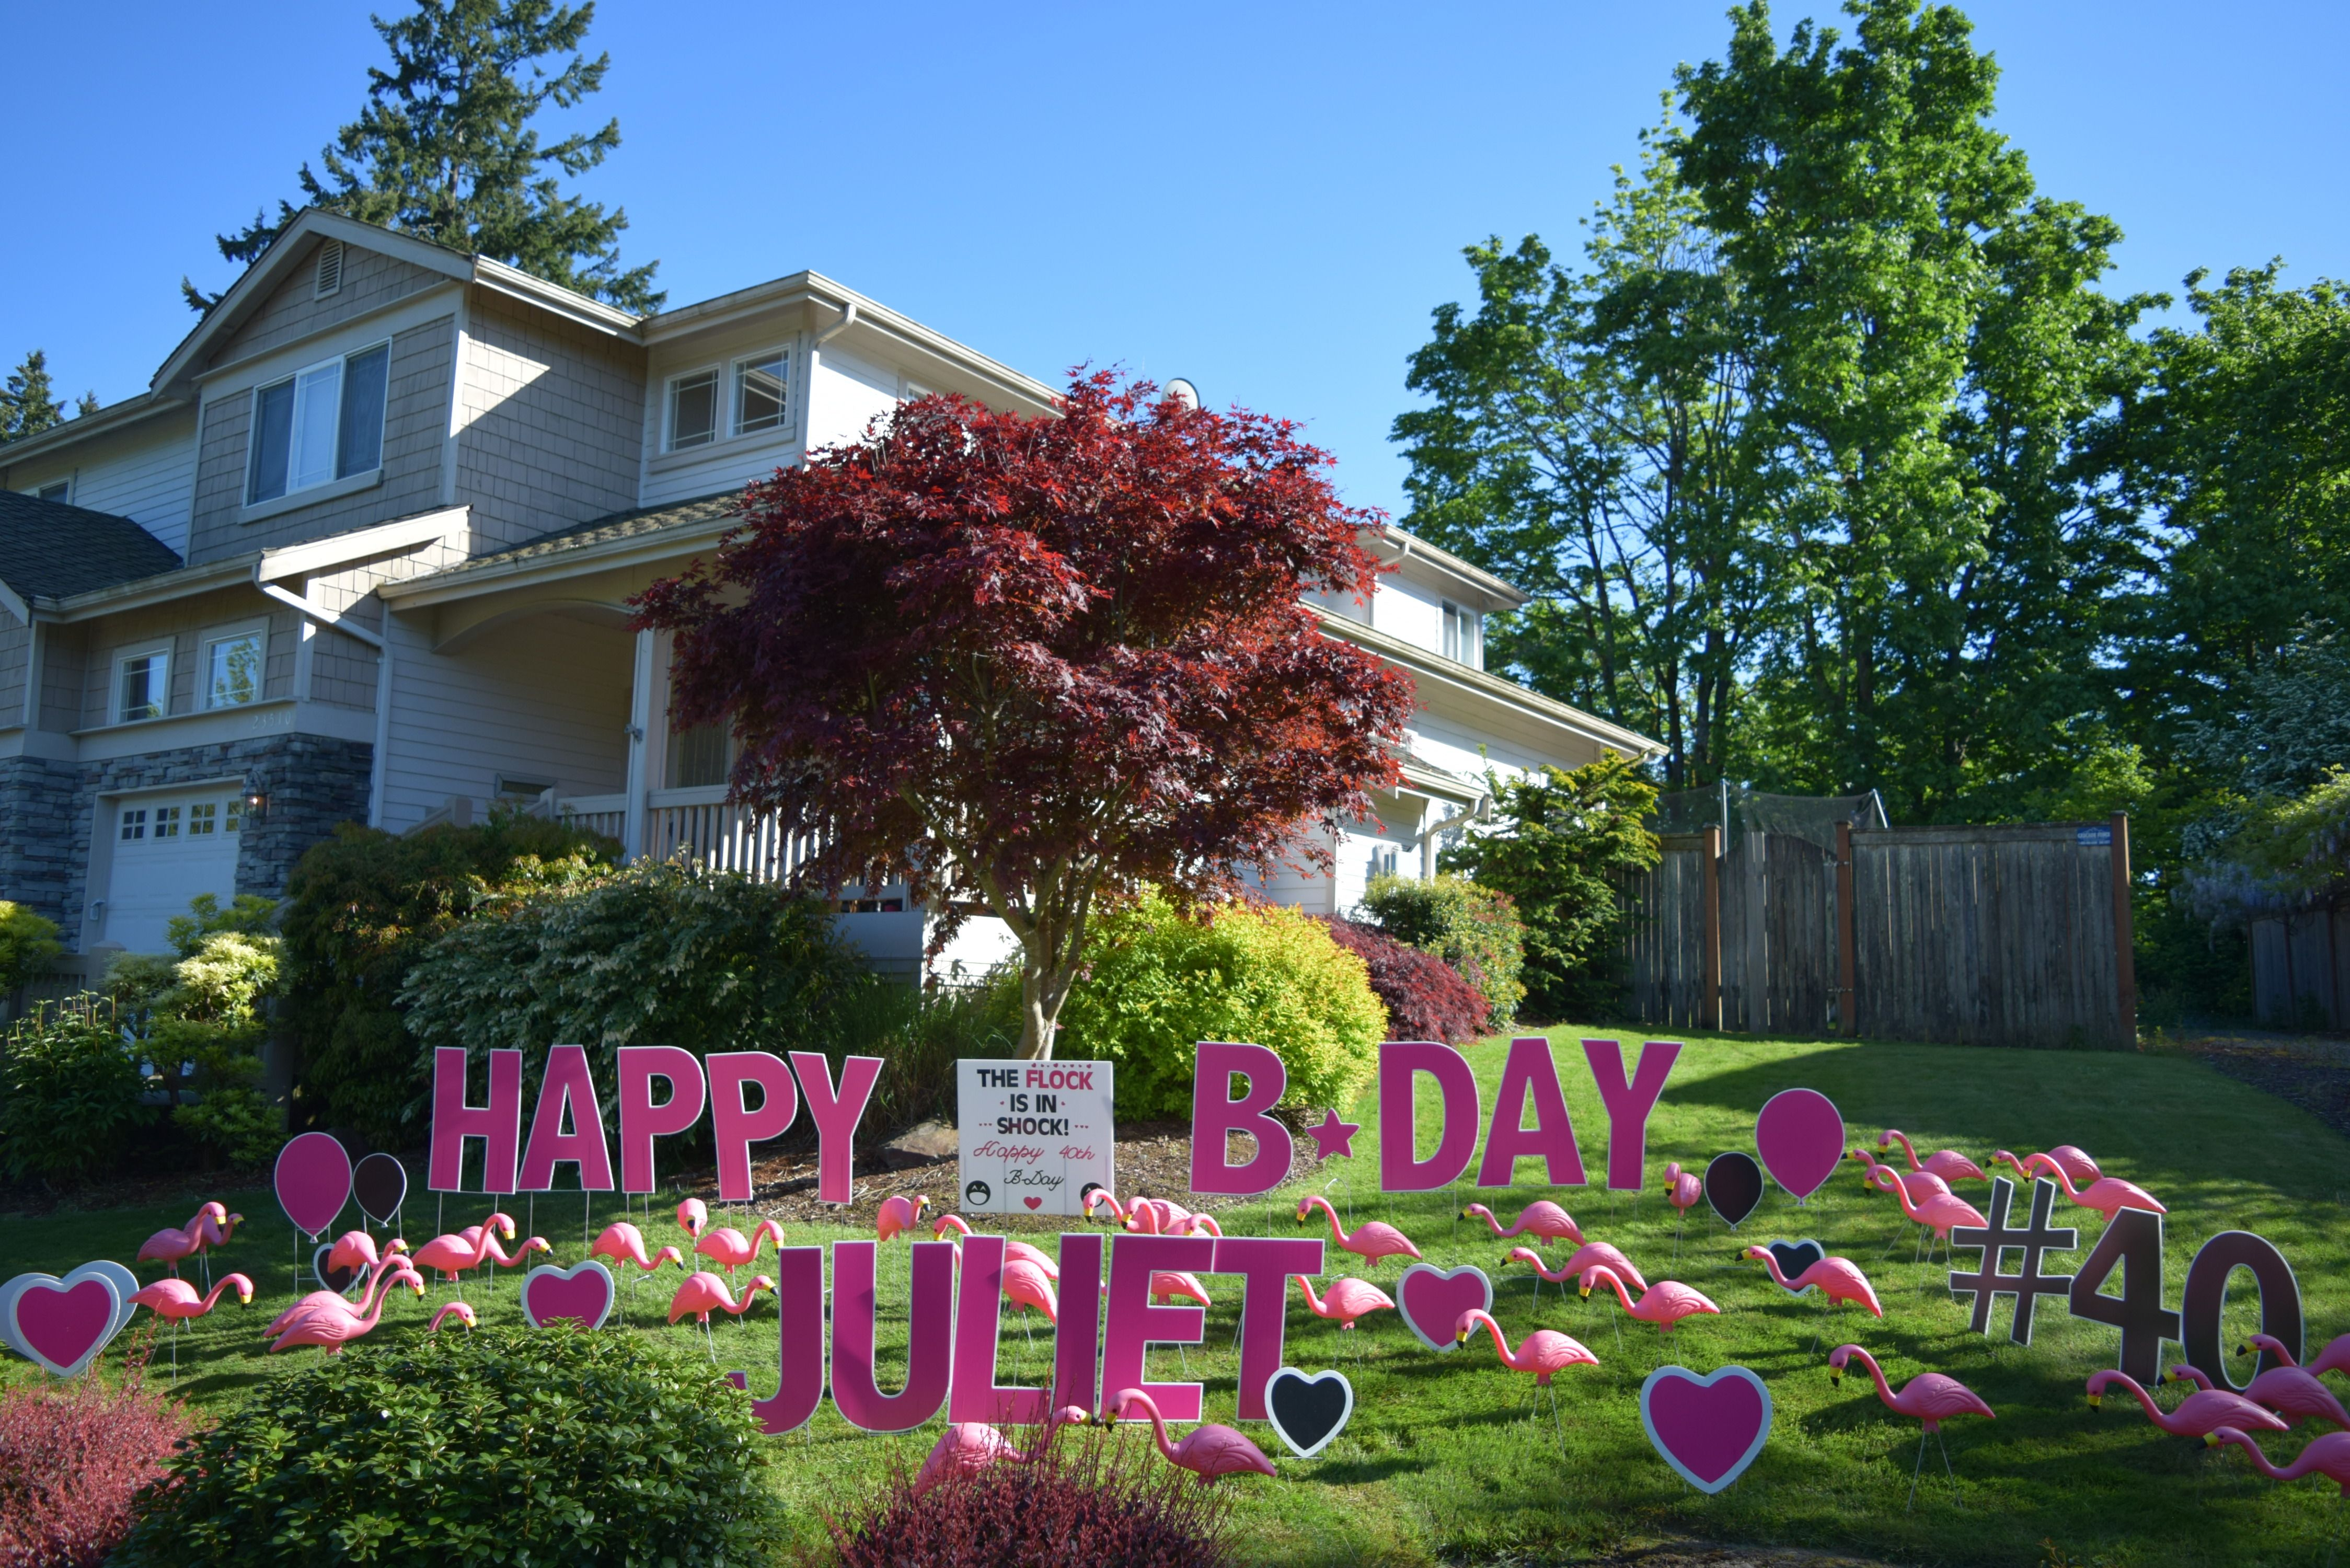 The Flock Is In Shock Birthday Yard Signs Lynnwood WA To Help You Decorate And Celebrate That Special Youve Been Flocked